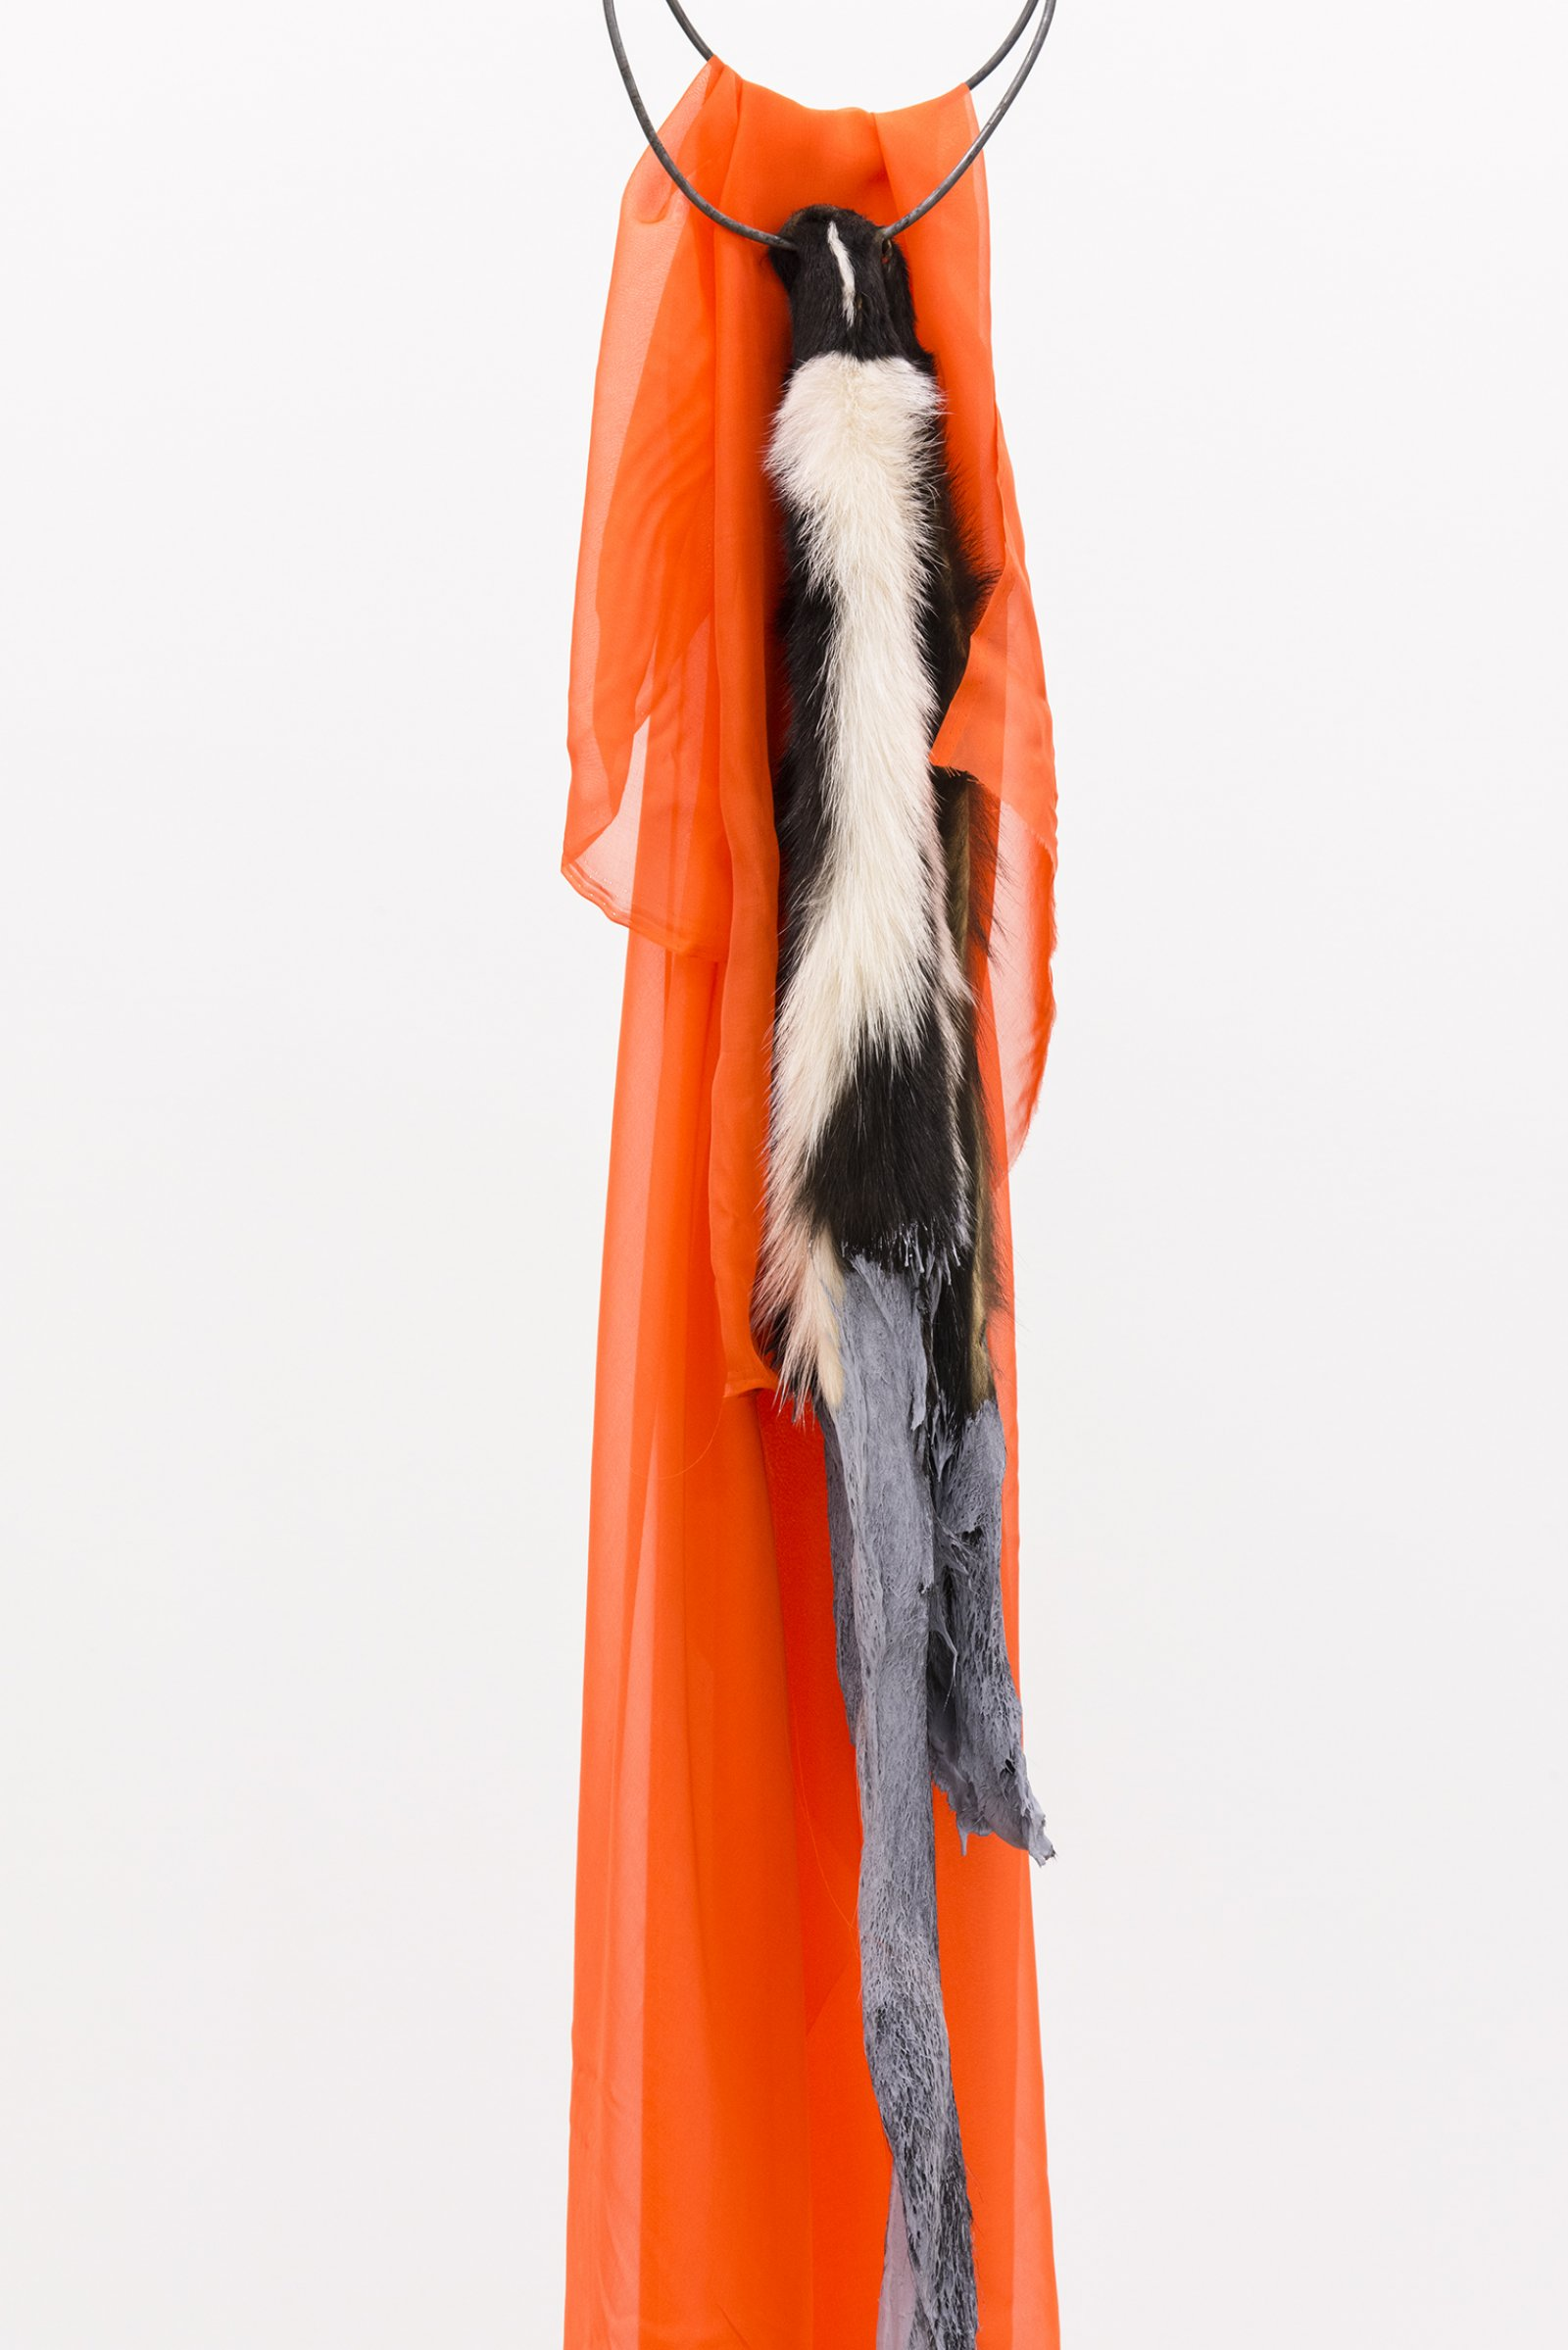 Duane Linklater, The most beautiful thing in the world (detail), 2014, skunk fur, paint, garment rack, hangers, fabric, 66 x 60 x 20 in. (168 x 151 x 52 cm) by Duane Linklater